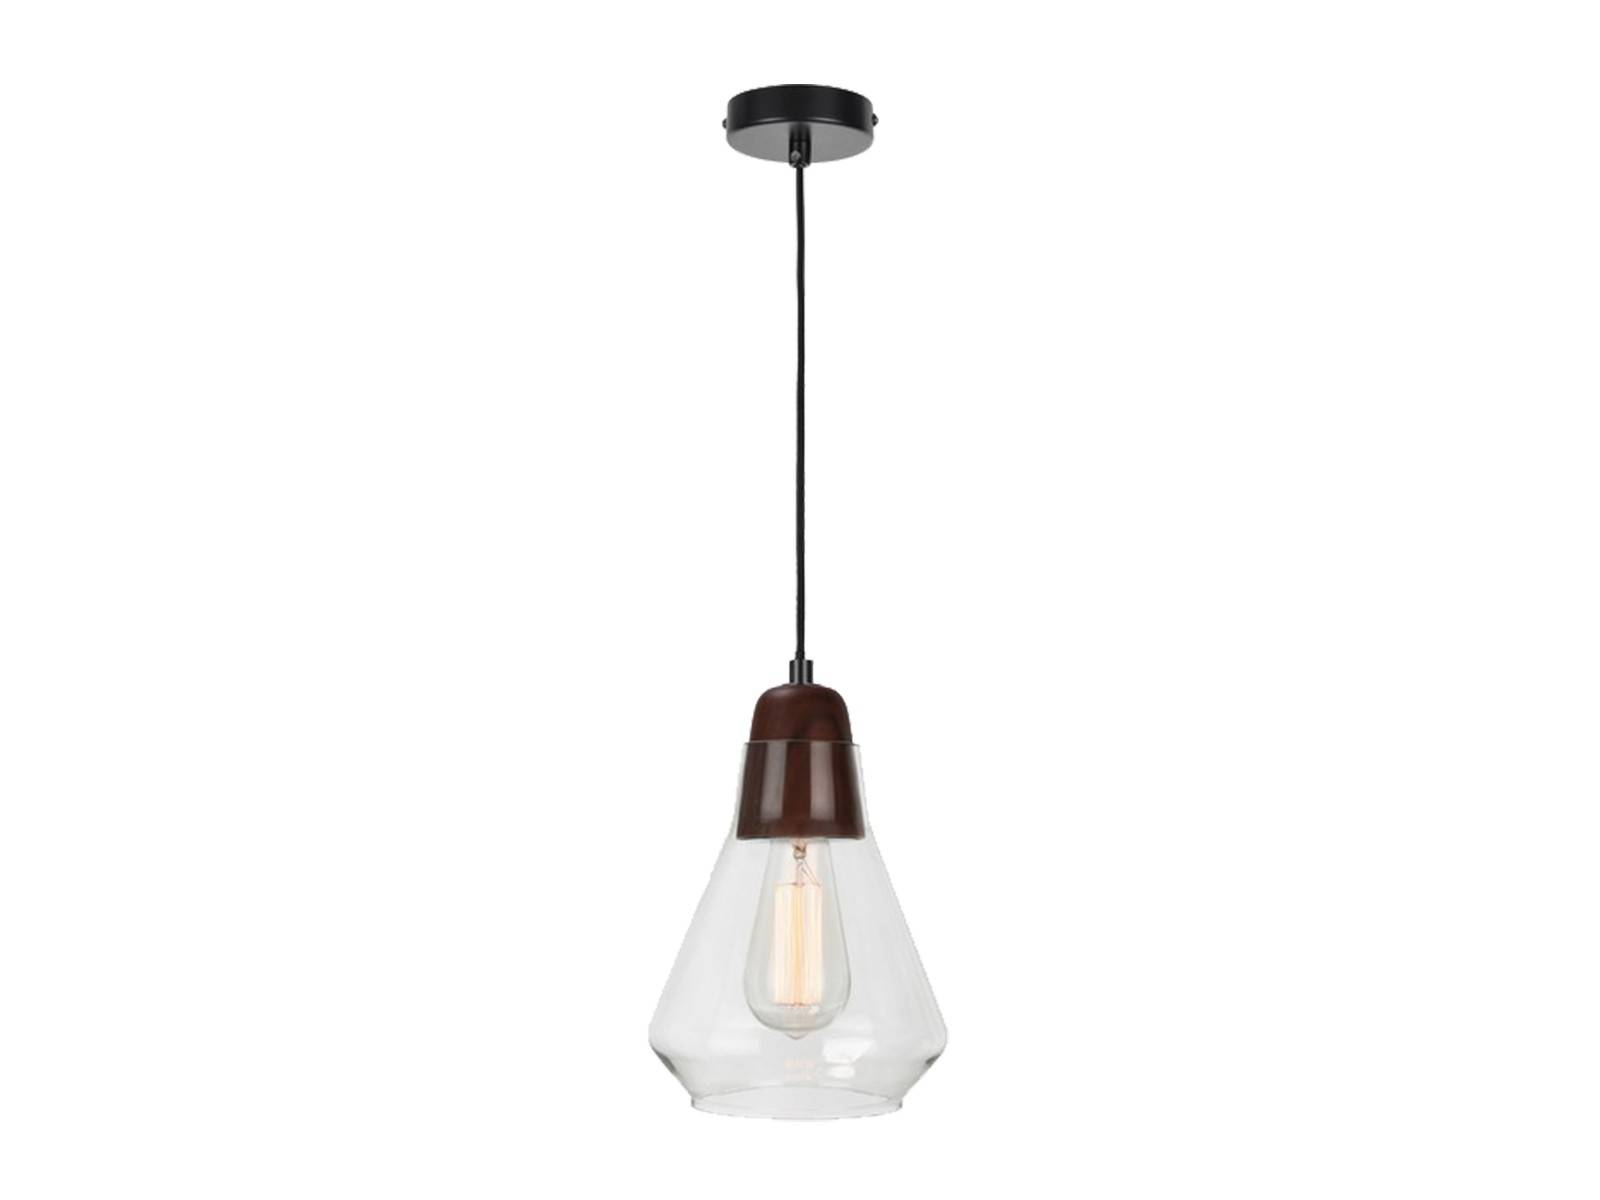 15 best collection of tubular pendant lights 1 light pendant in walnutglass for tubular pendant lights image 1 of 15 arubaitofo Gallery